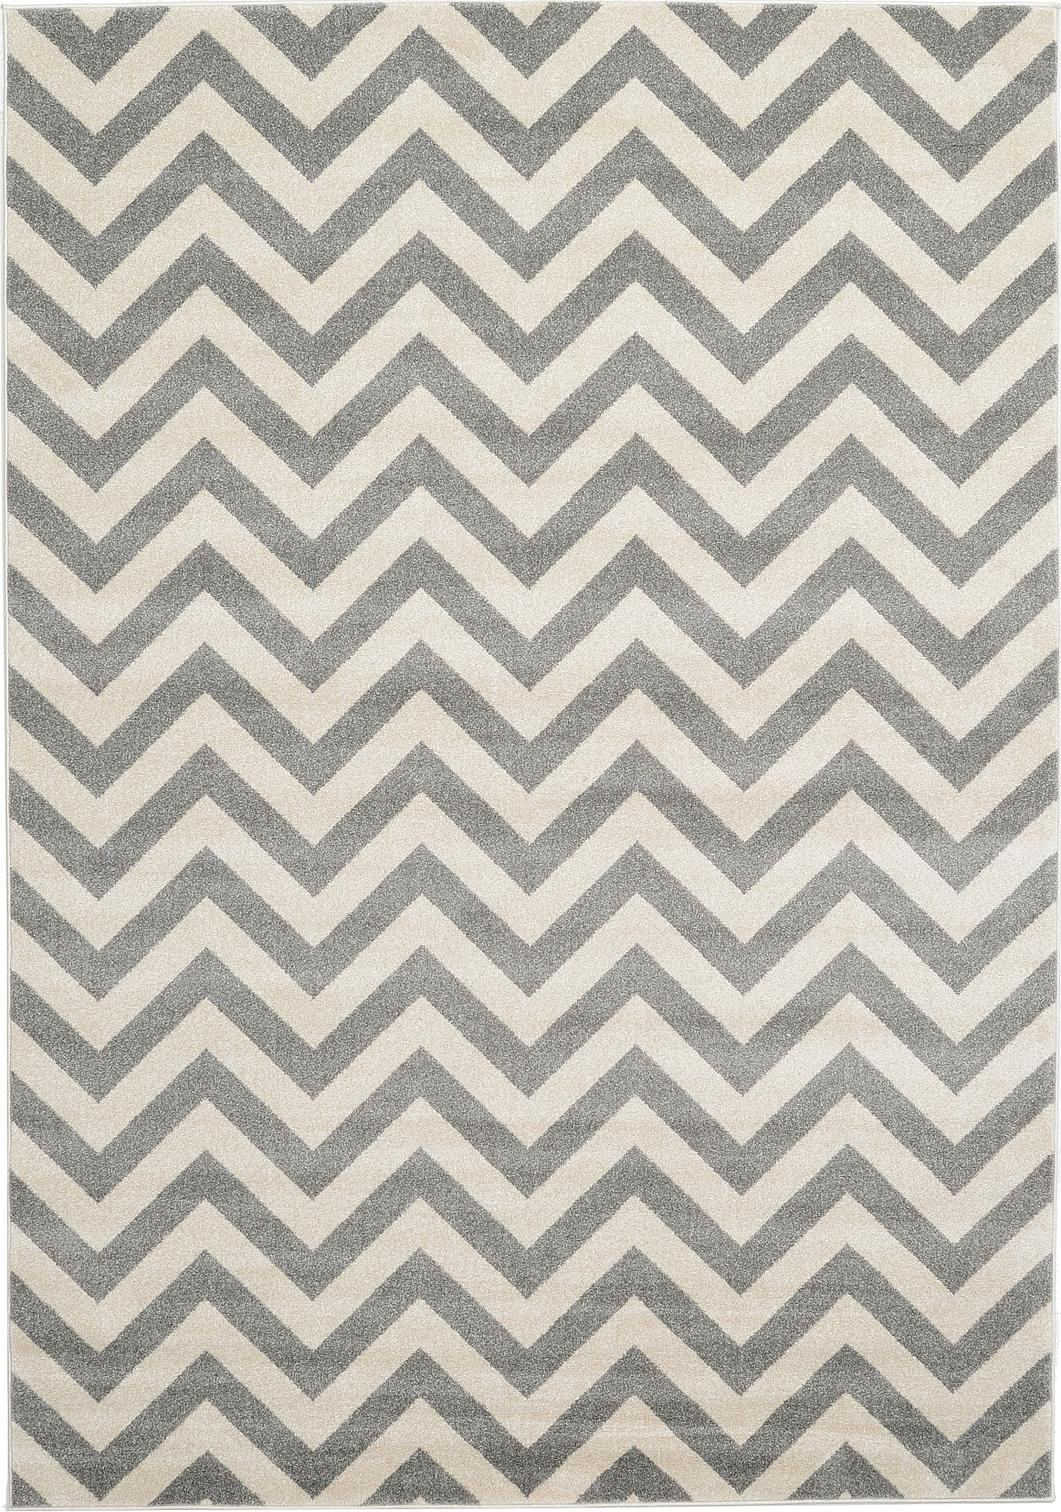 Chevron Rug | Yellow Chevron Outdoor Rug | Chevron Rug Living Room